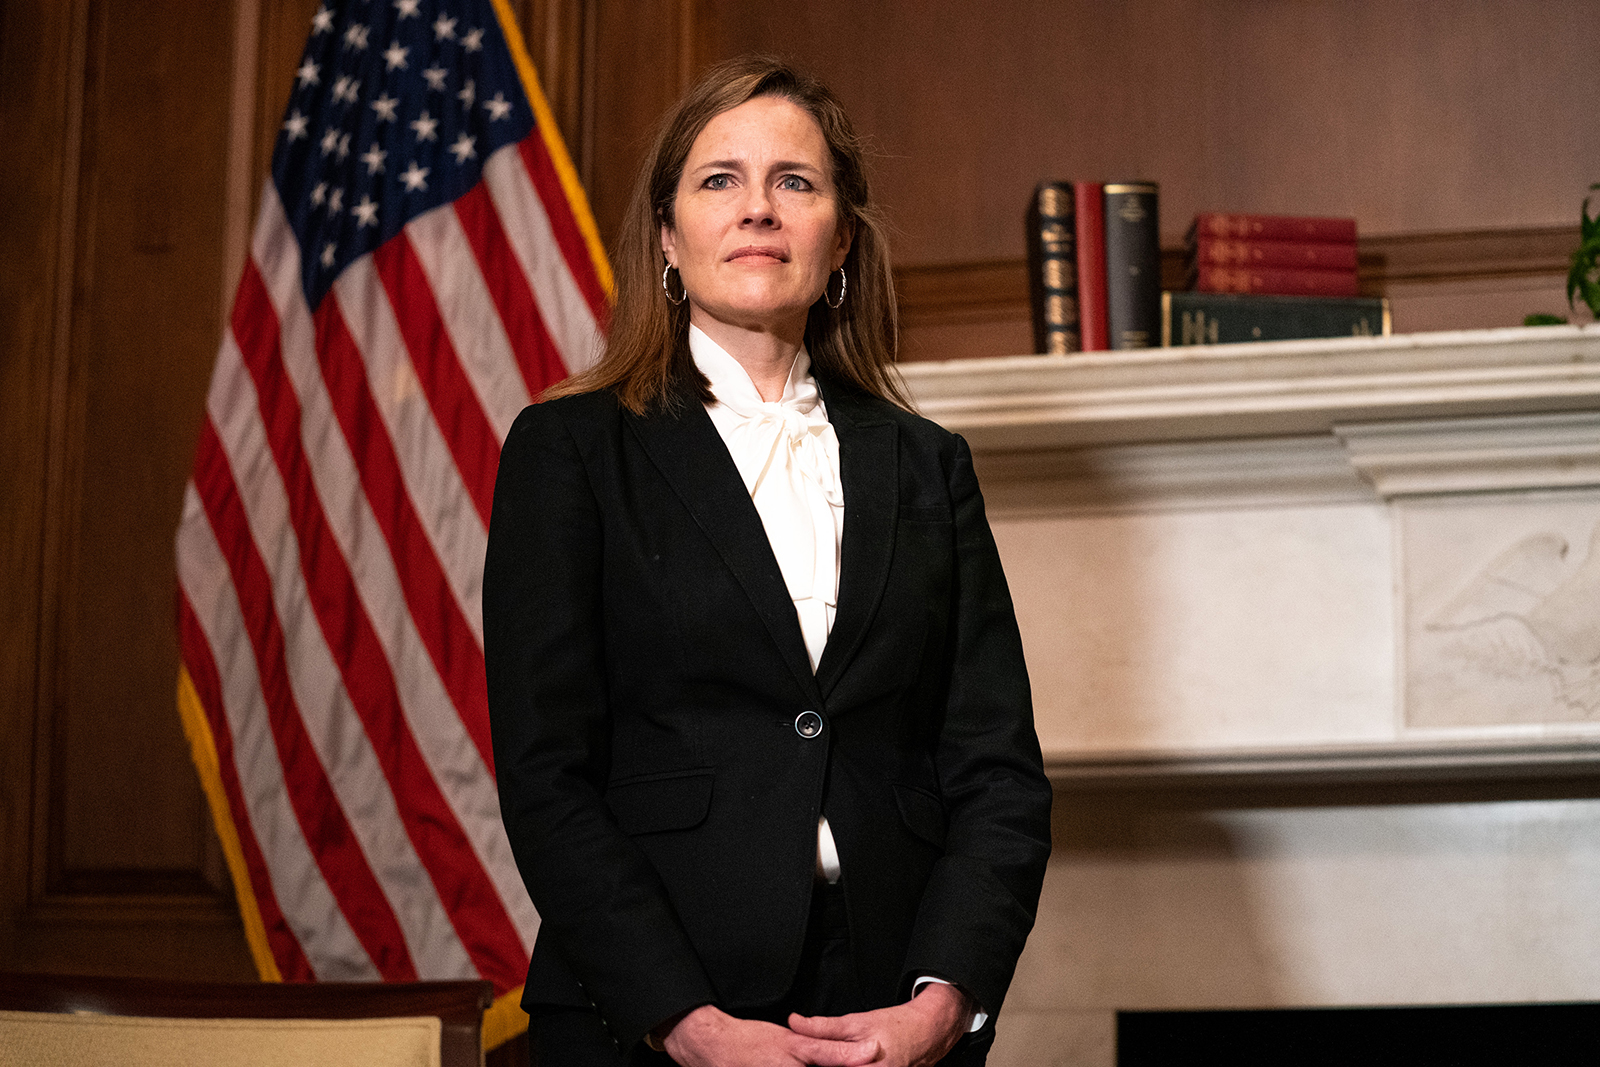 Judge Amy Coney Barrett, President Donald Trump's nominee for Supreme Court, poses for a photo before a meeting at the United States Capitol Building on October 1, in Washington.